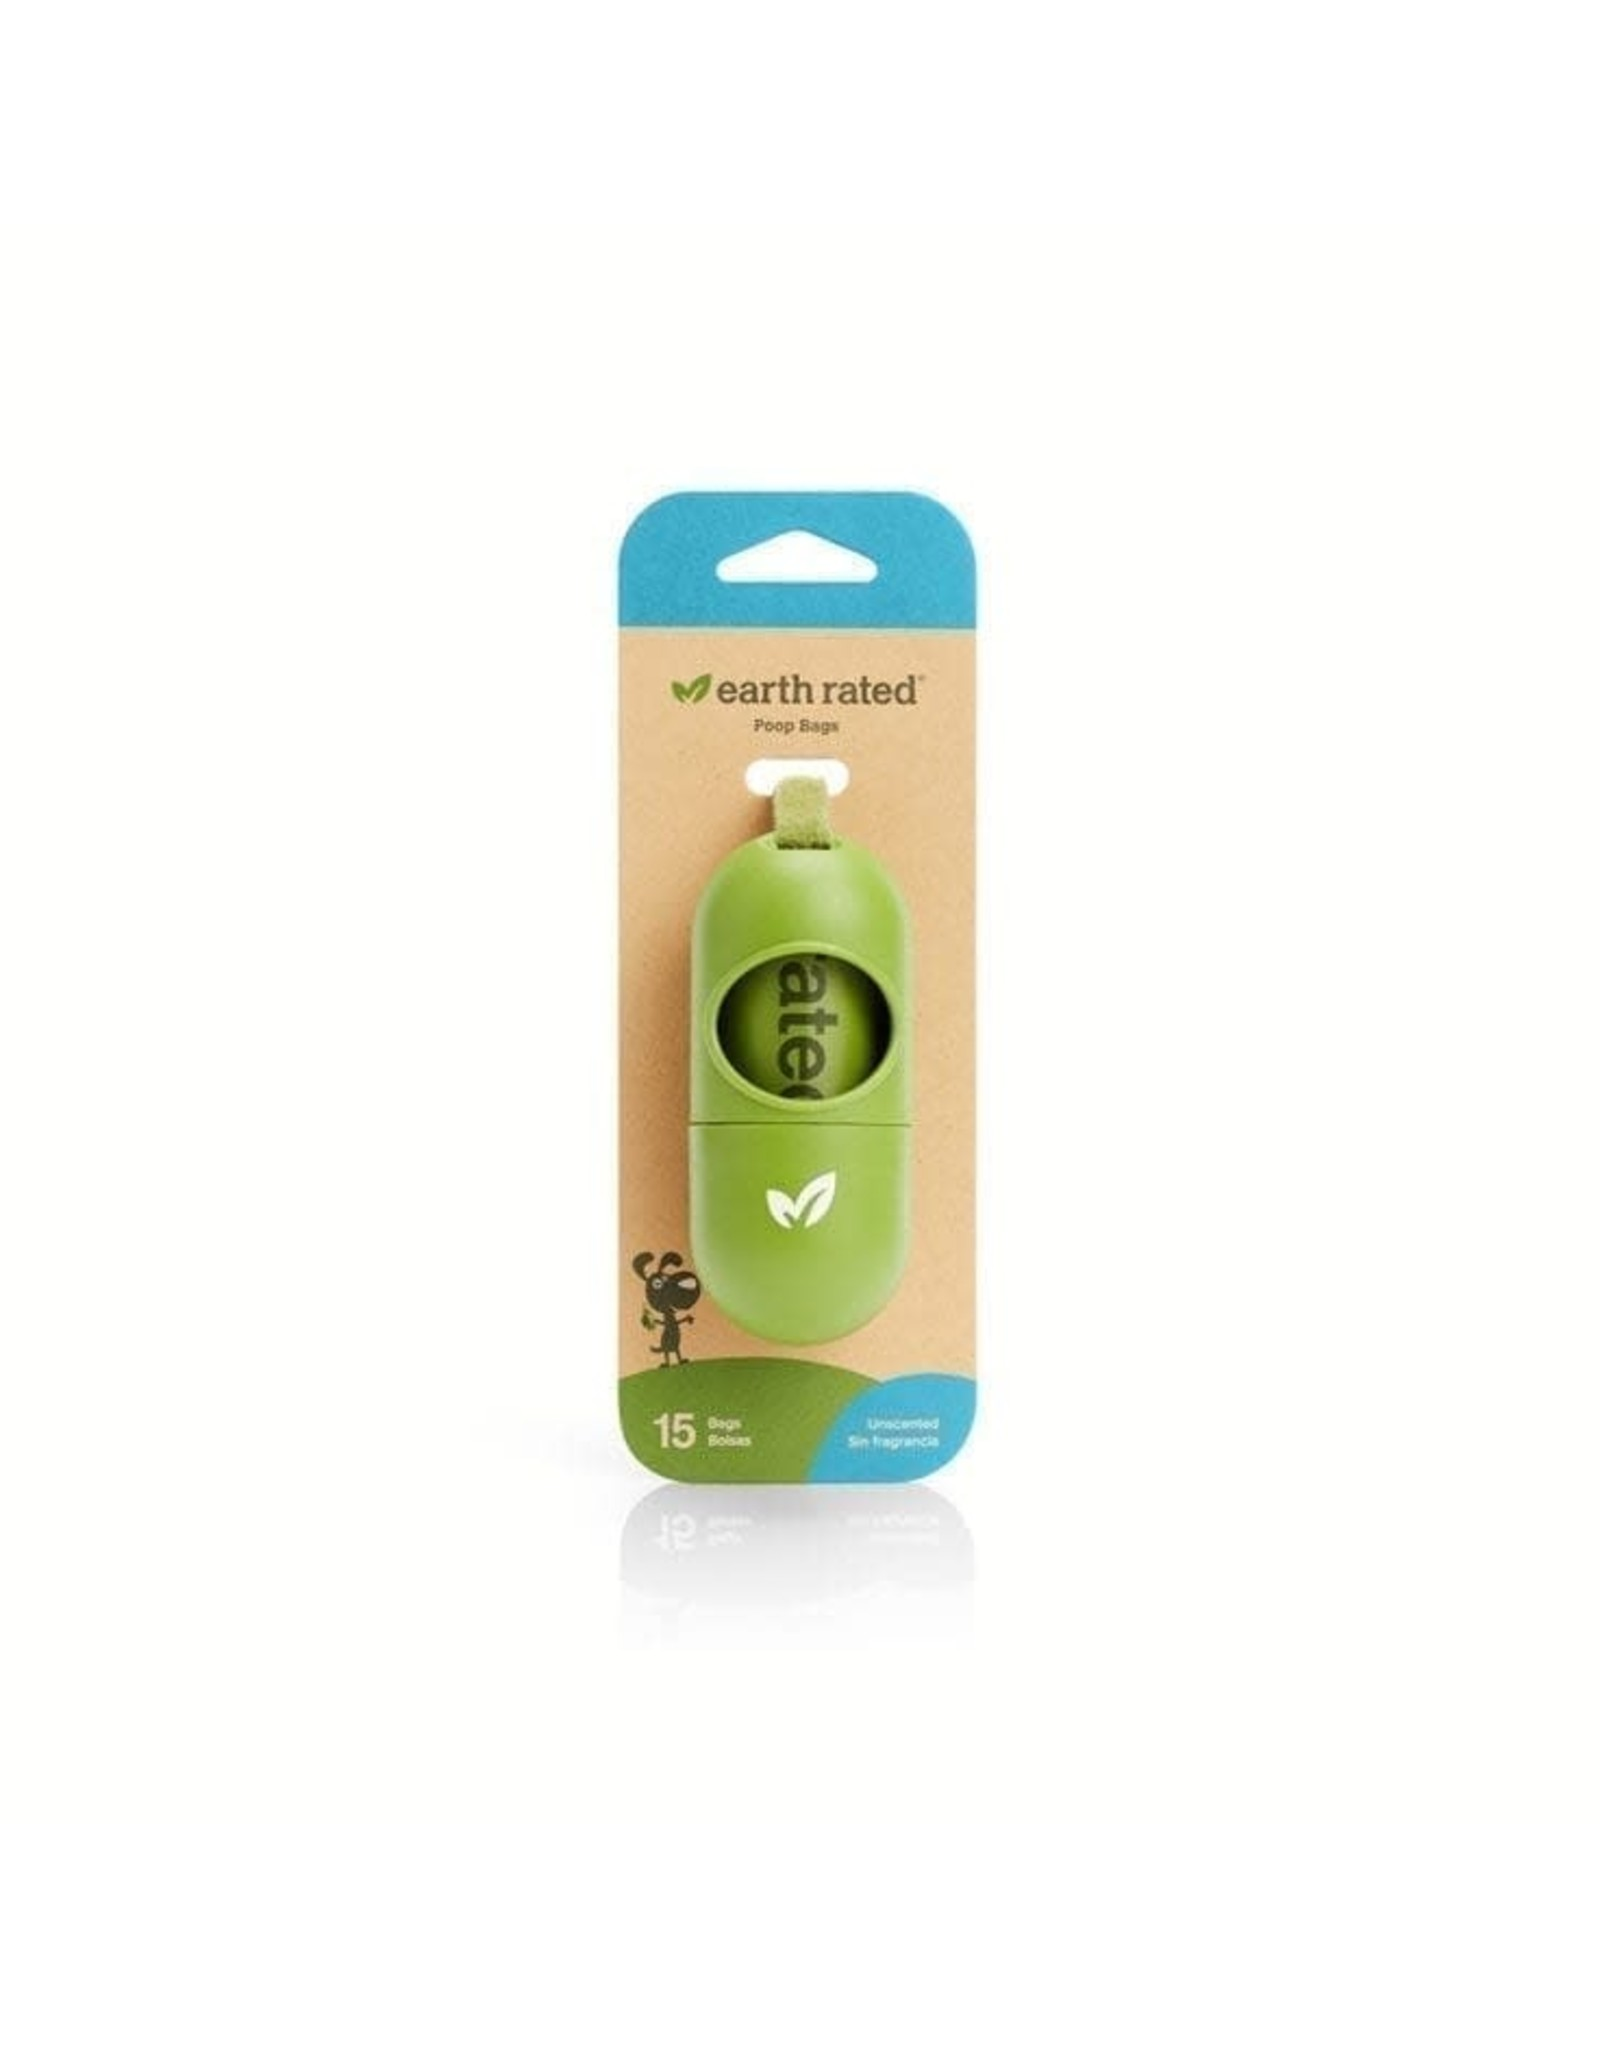 Earth Rated Earth Rated Green Dispenser W/ Unscented Waste Bags